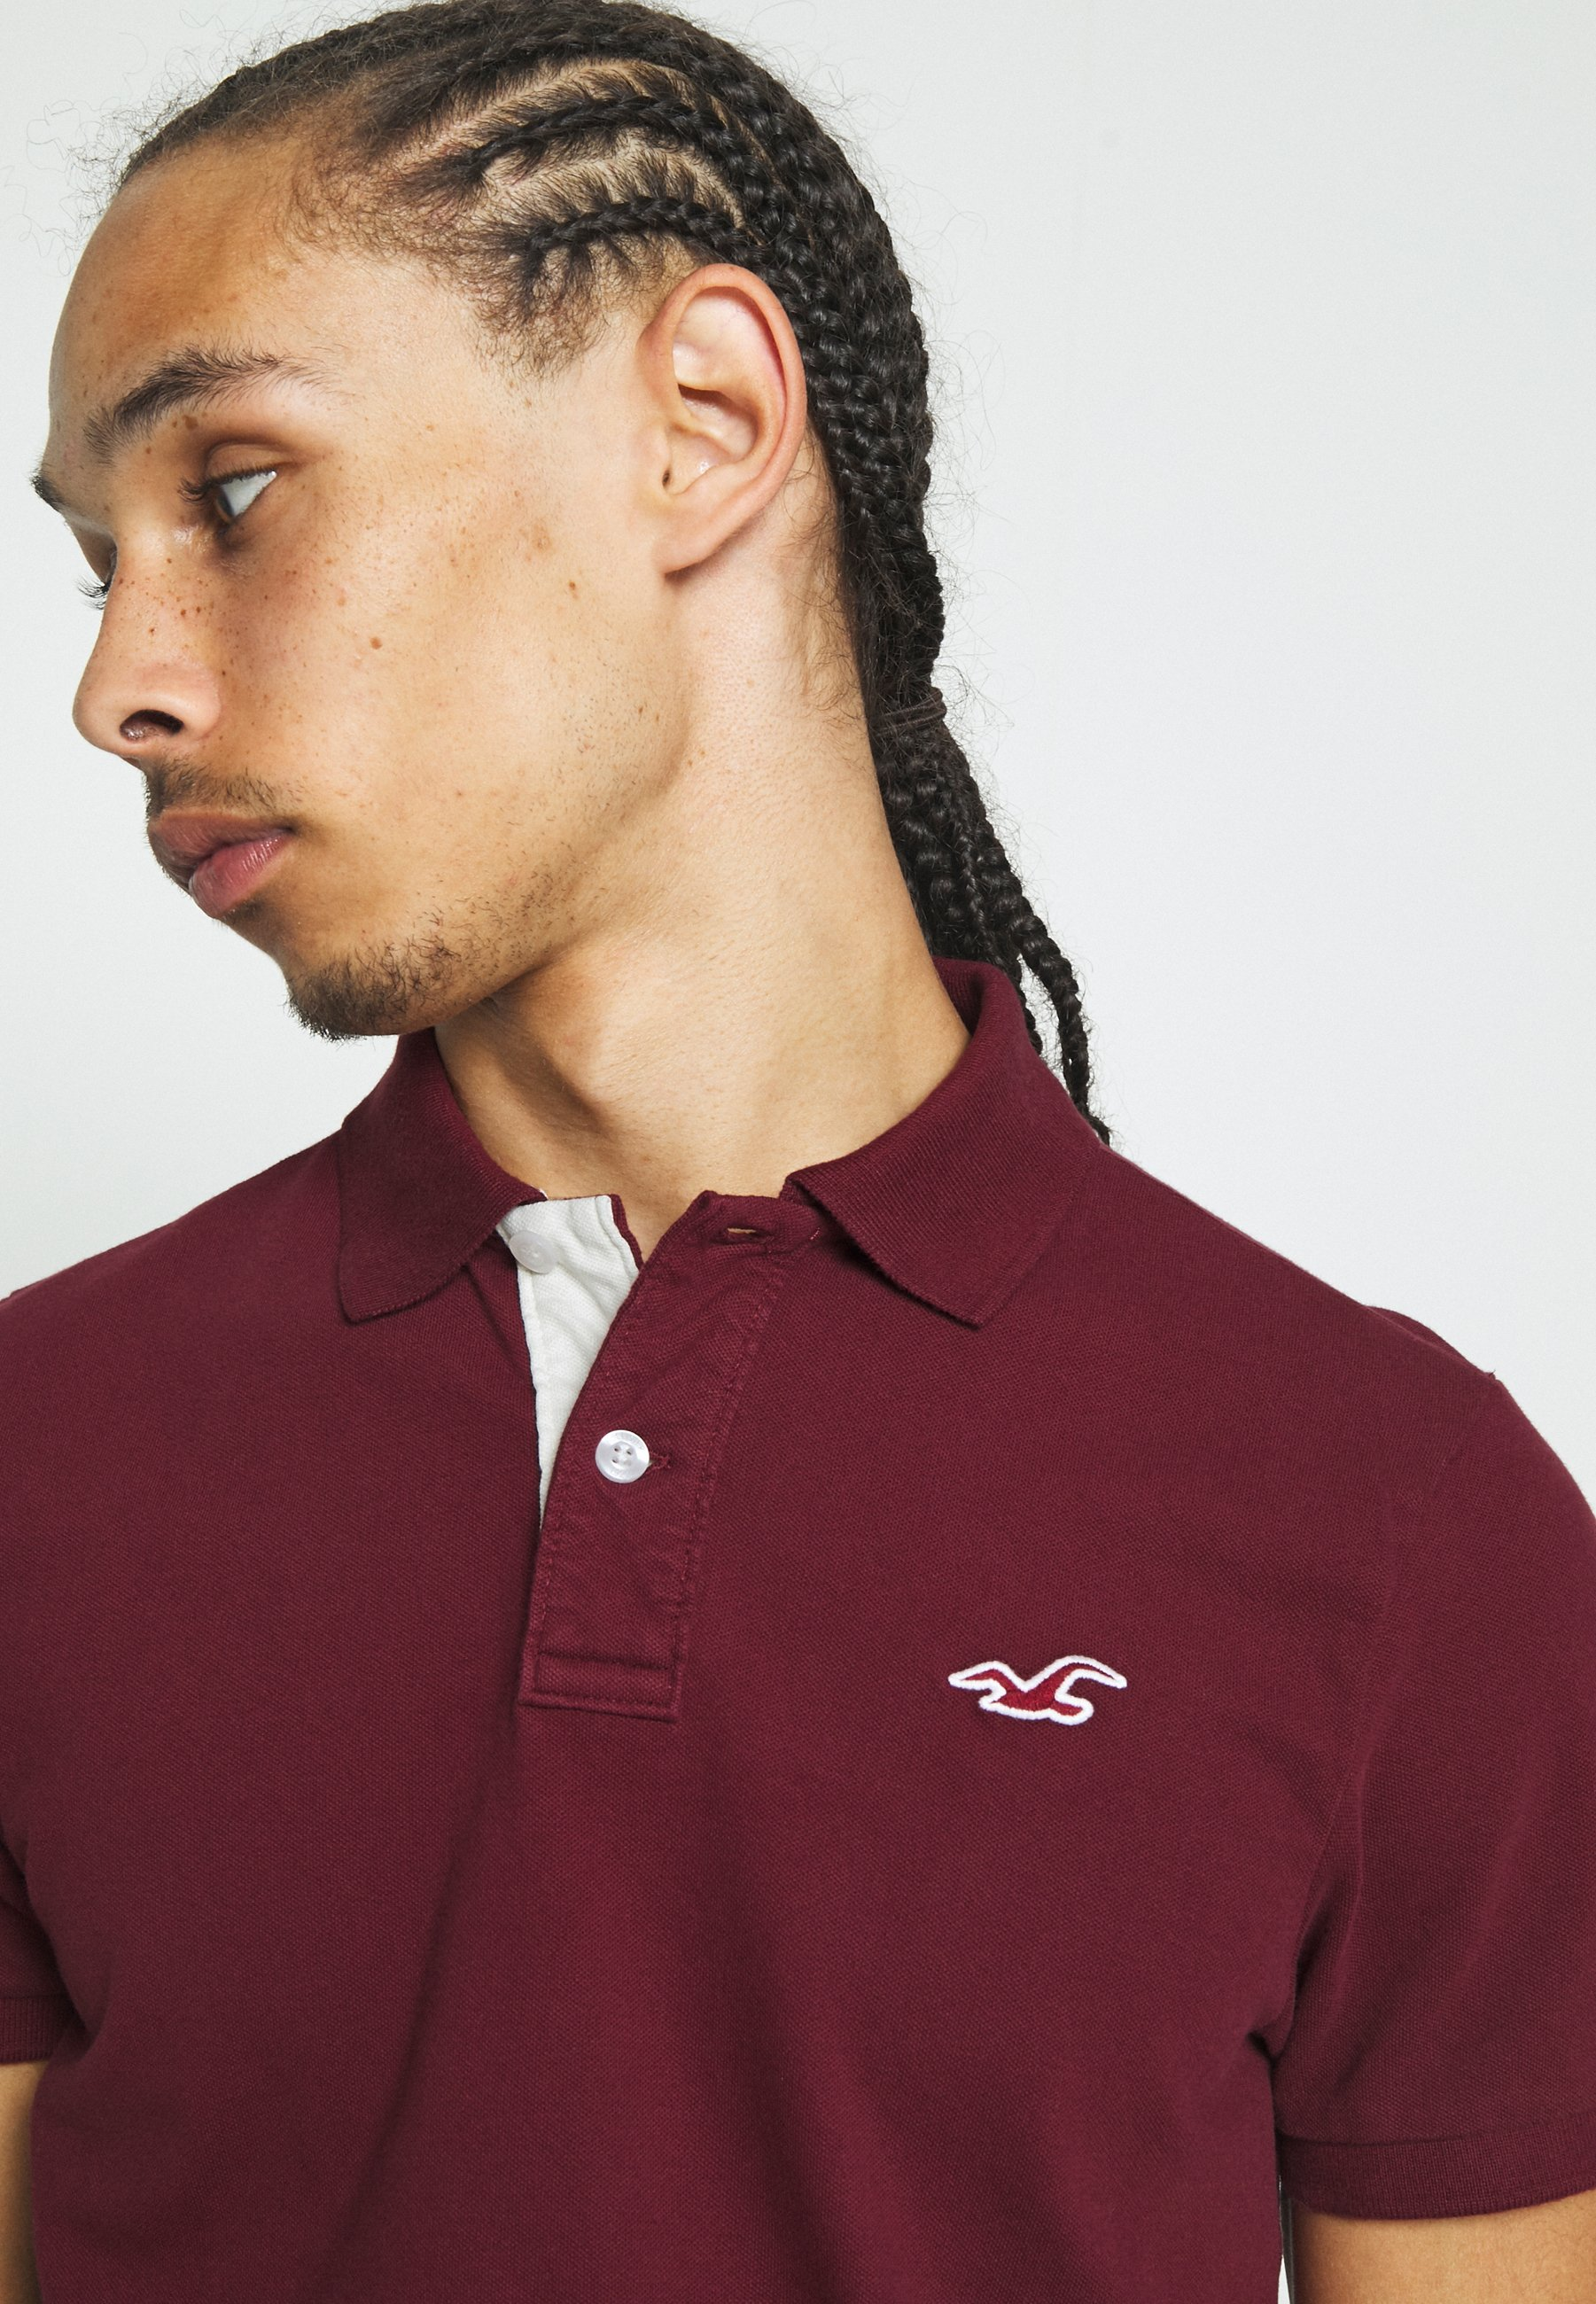 Hollister Co. Polo shirt - burgundy qwTSP